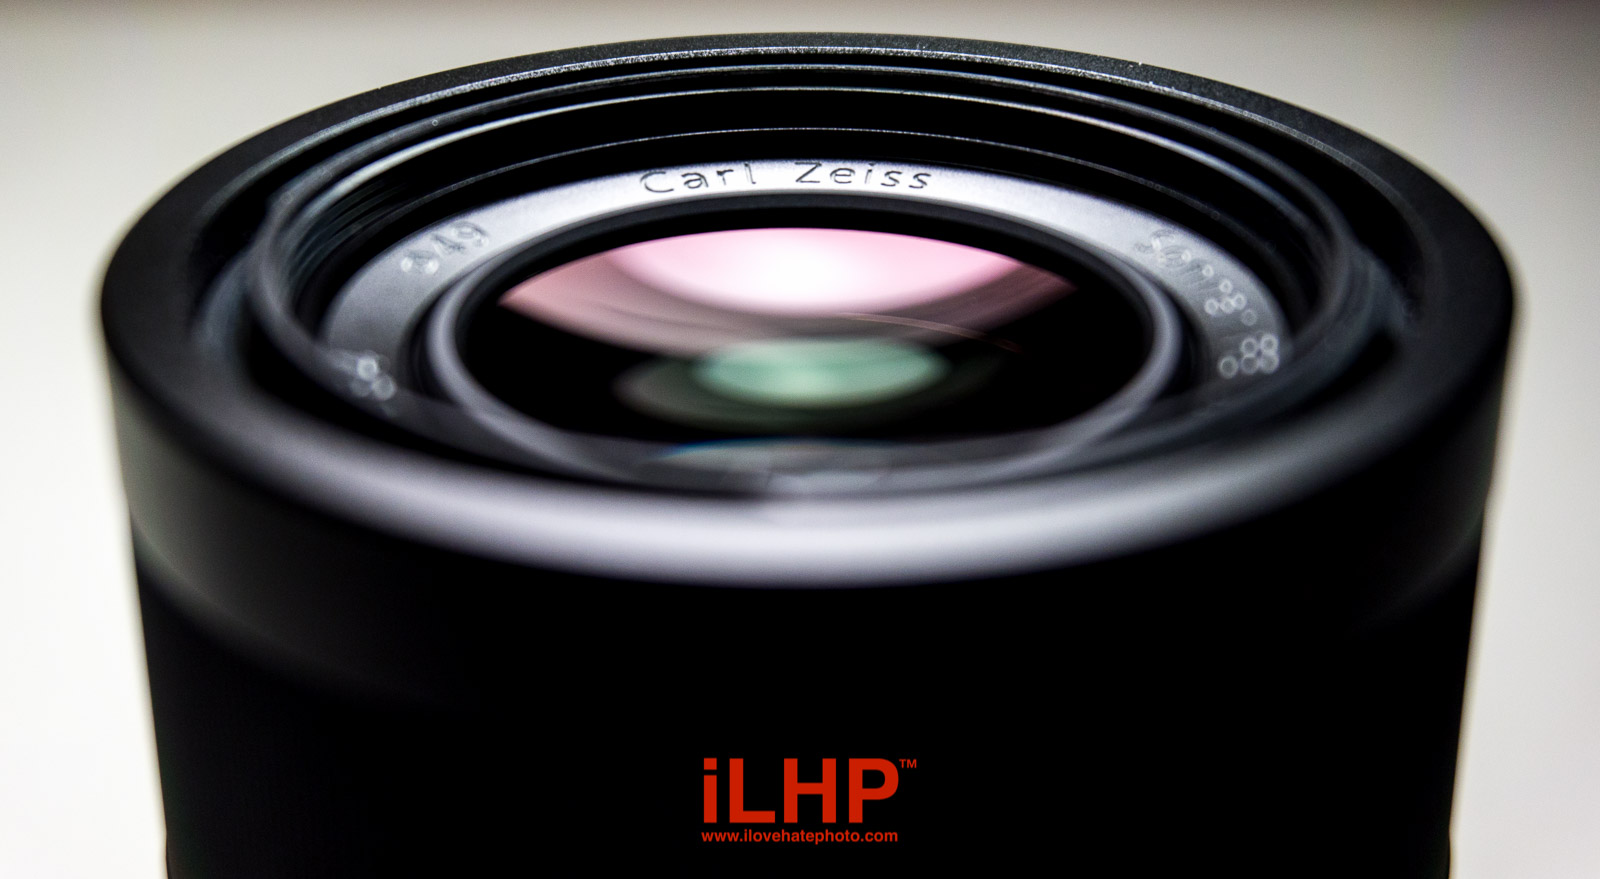 zeiss 55mm f1.8 build quality